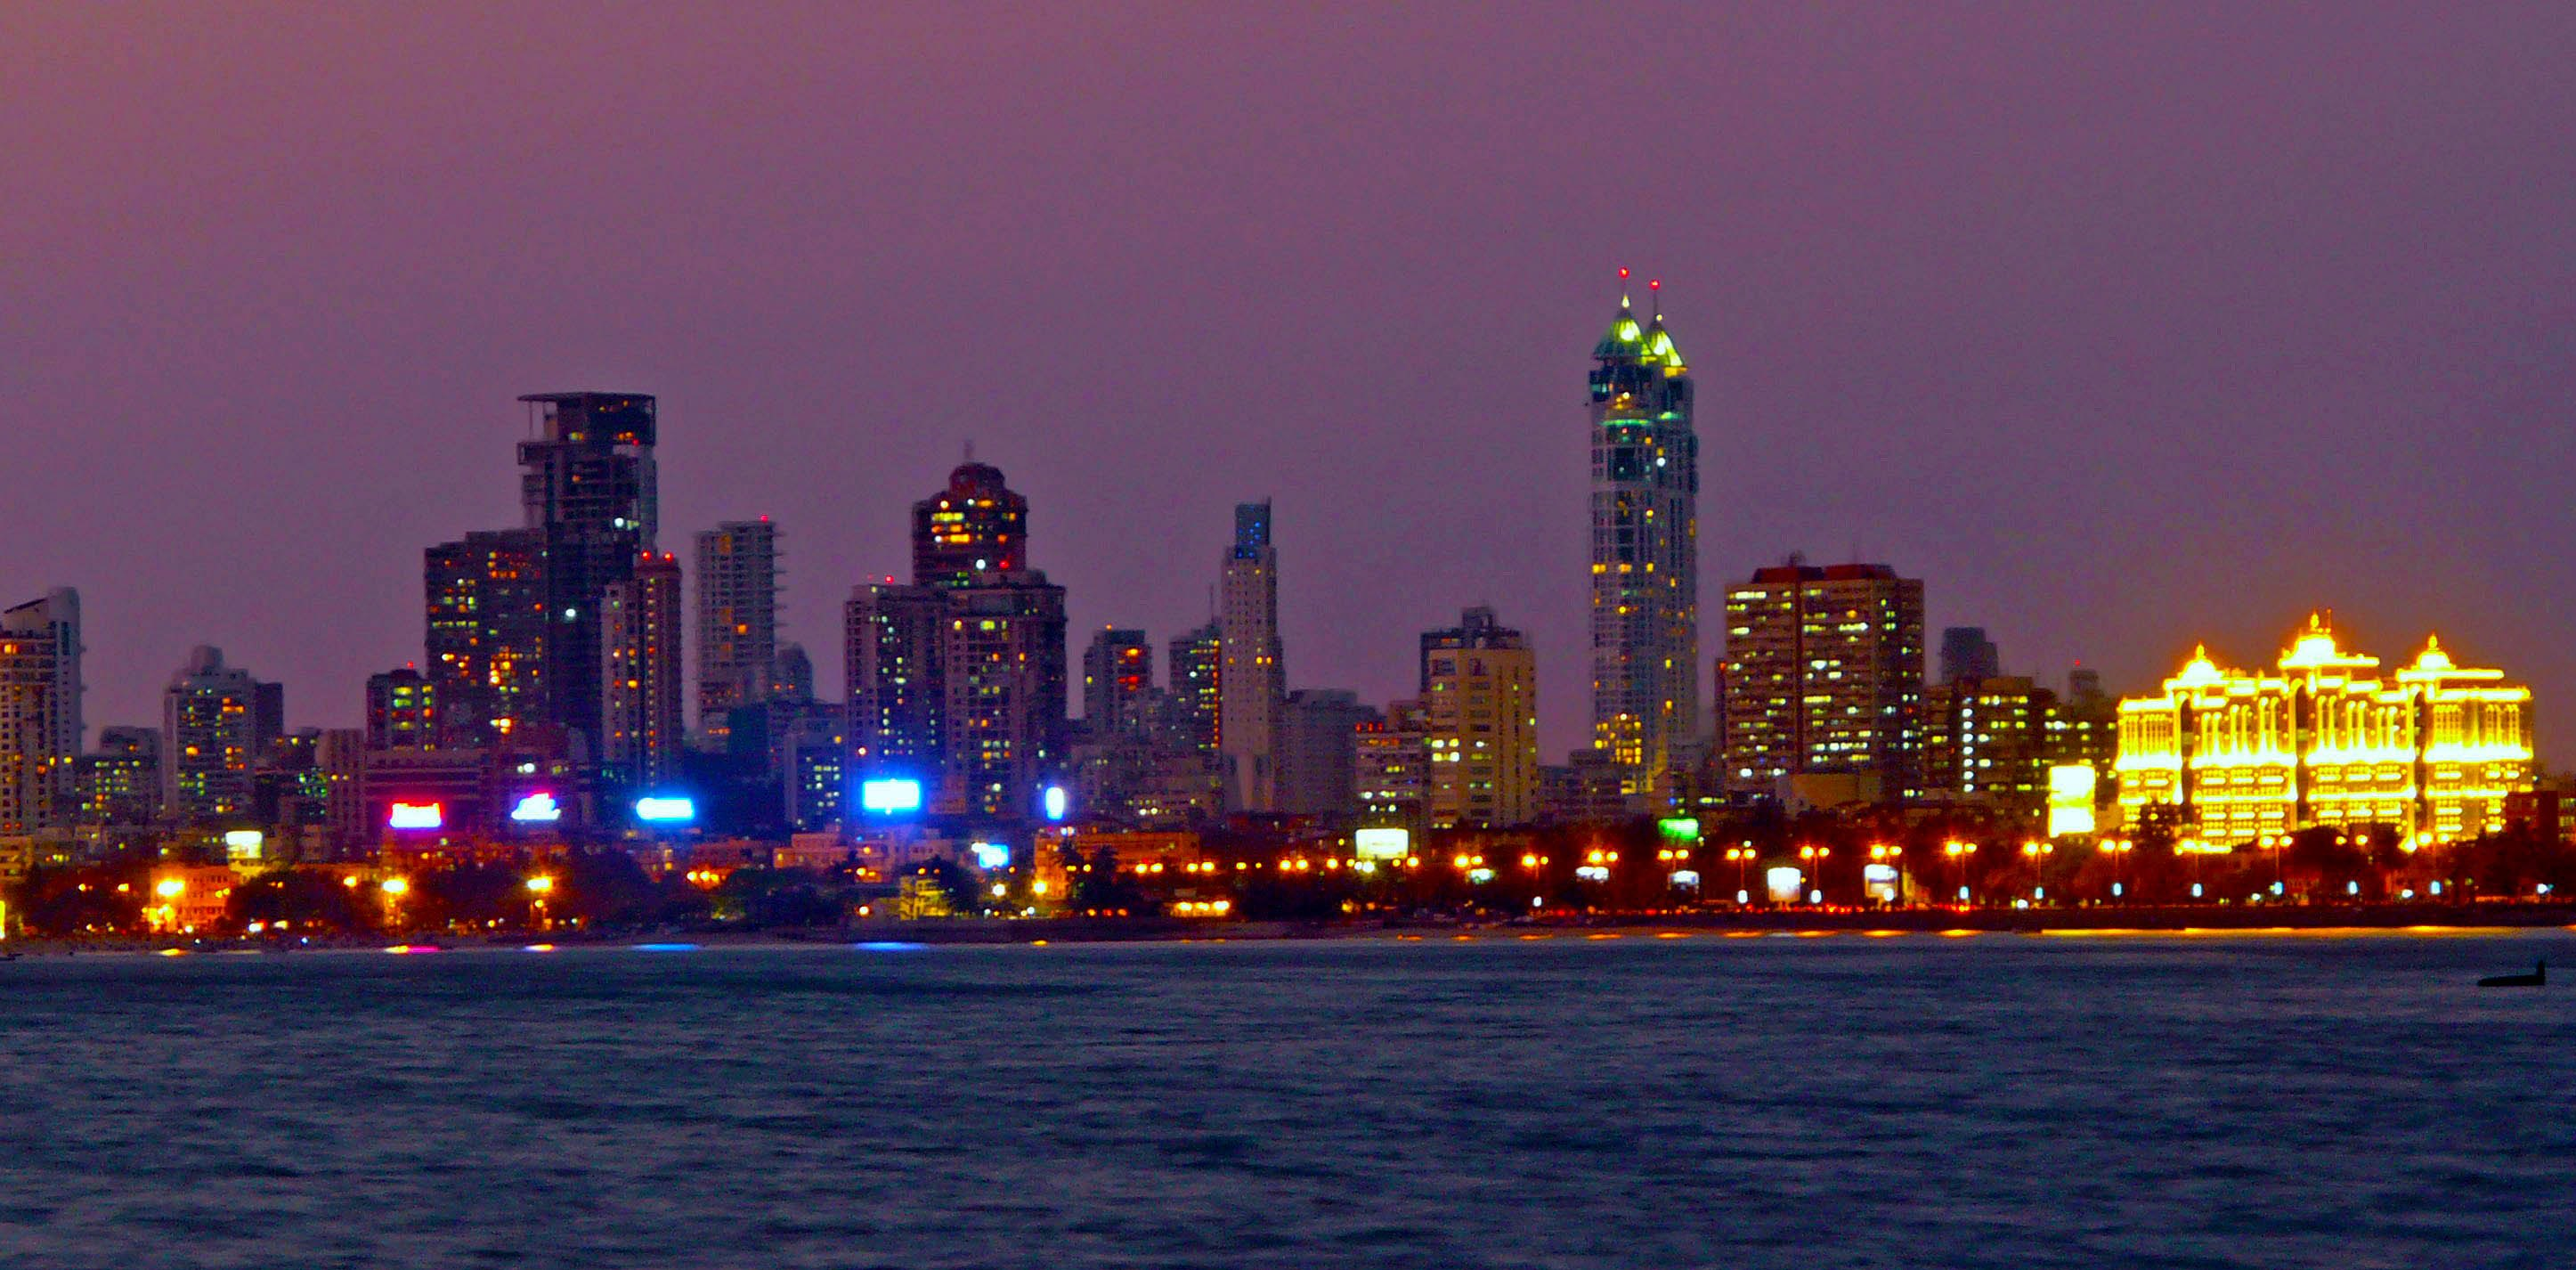 Night View of South Mumbai